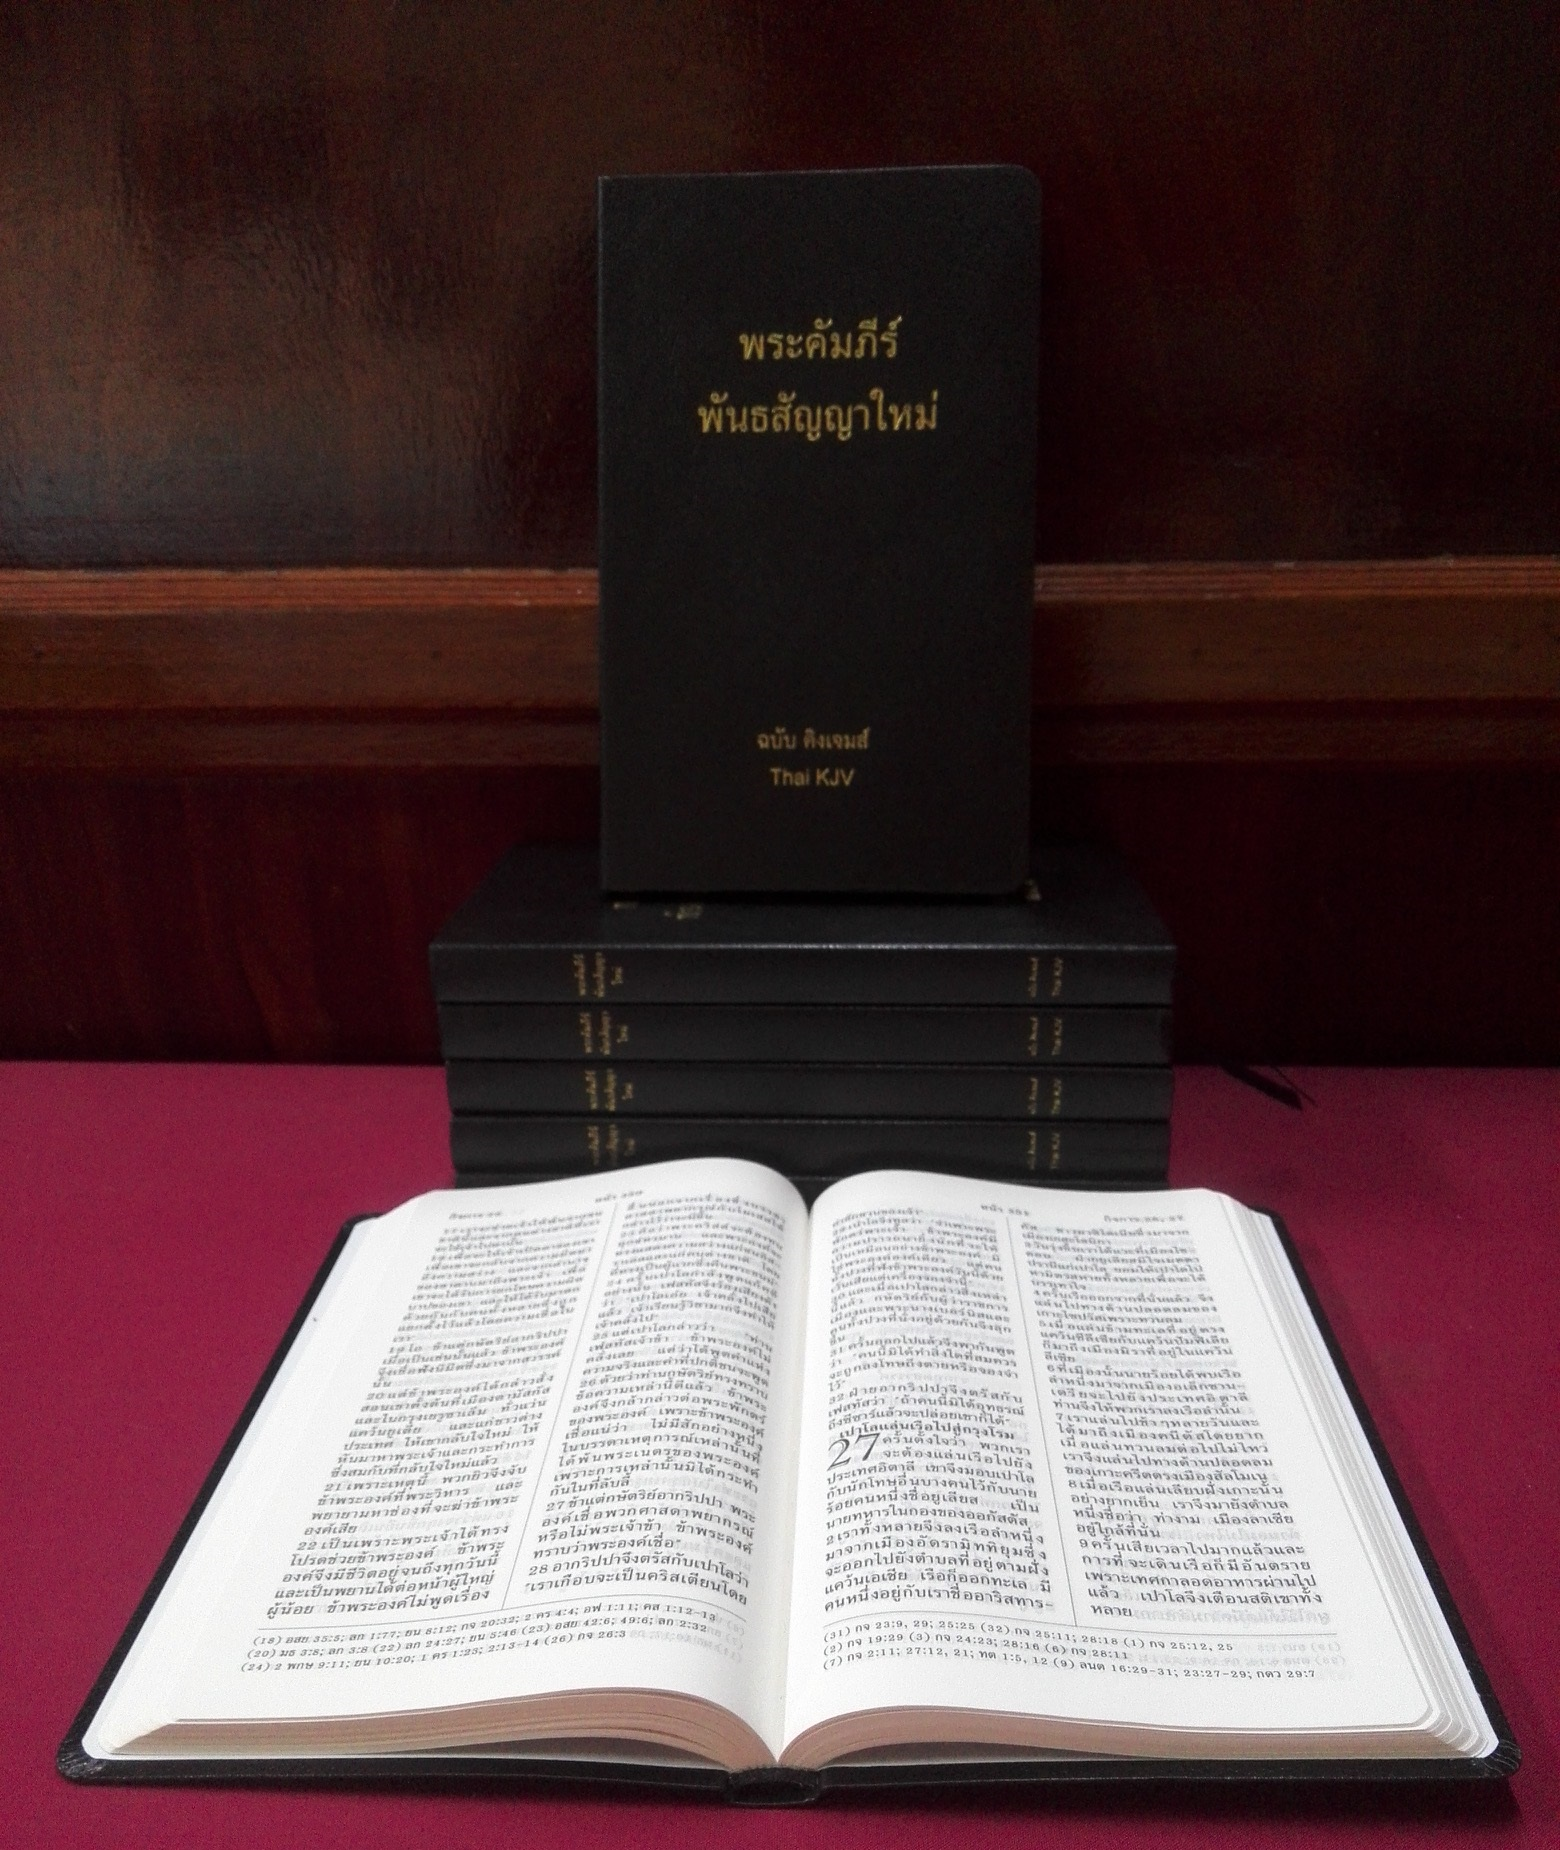 Thai KJV New Testament